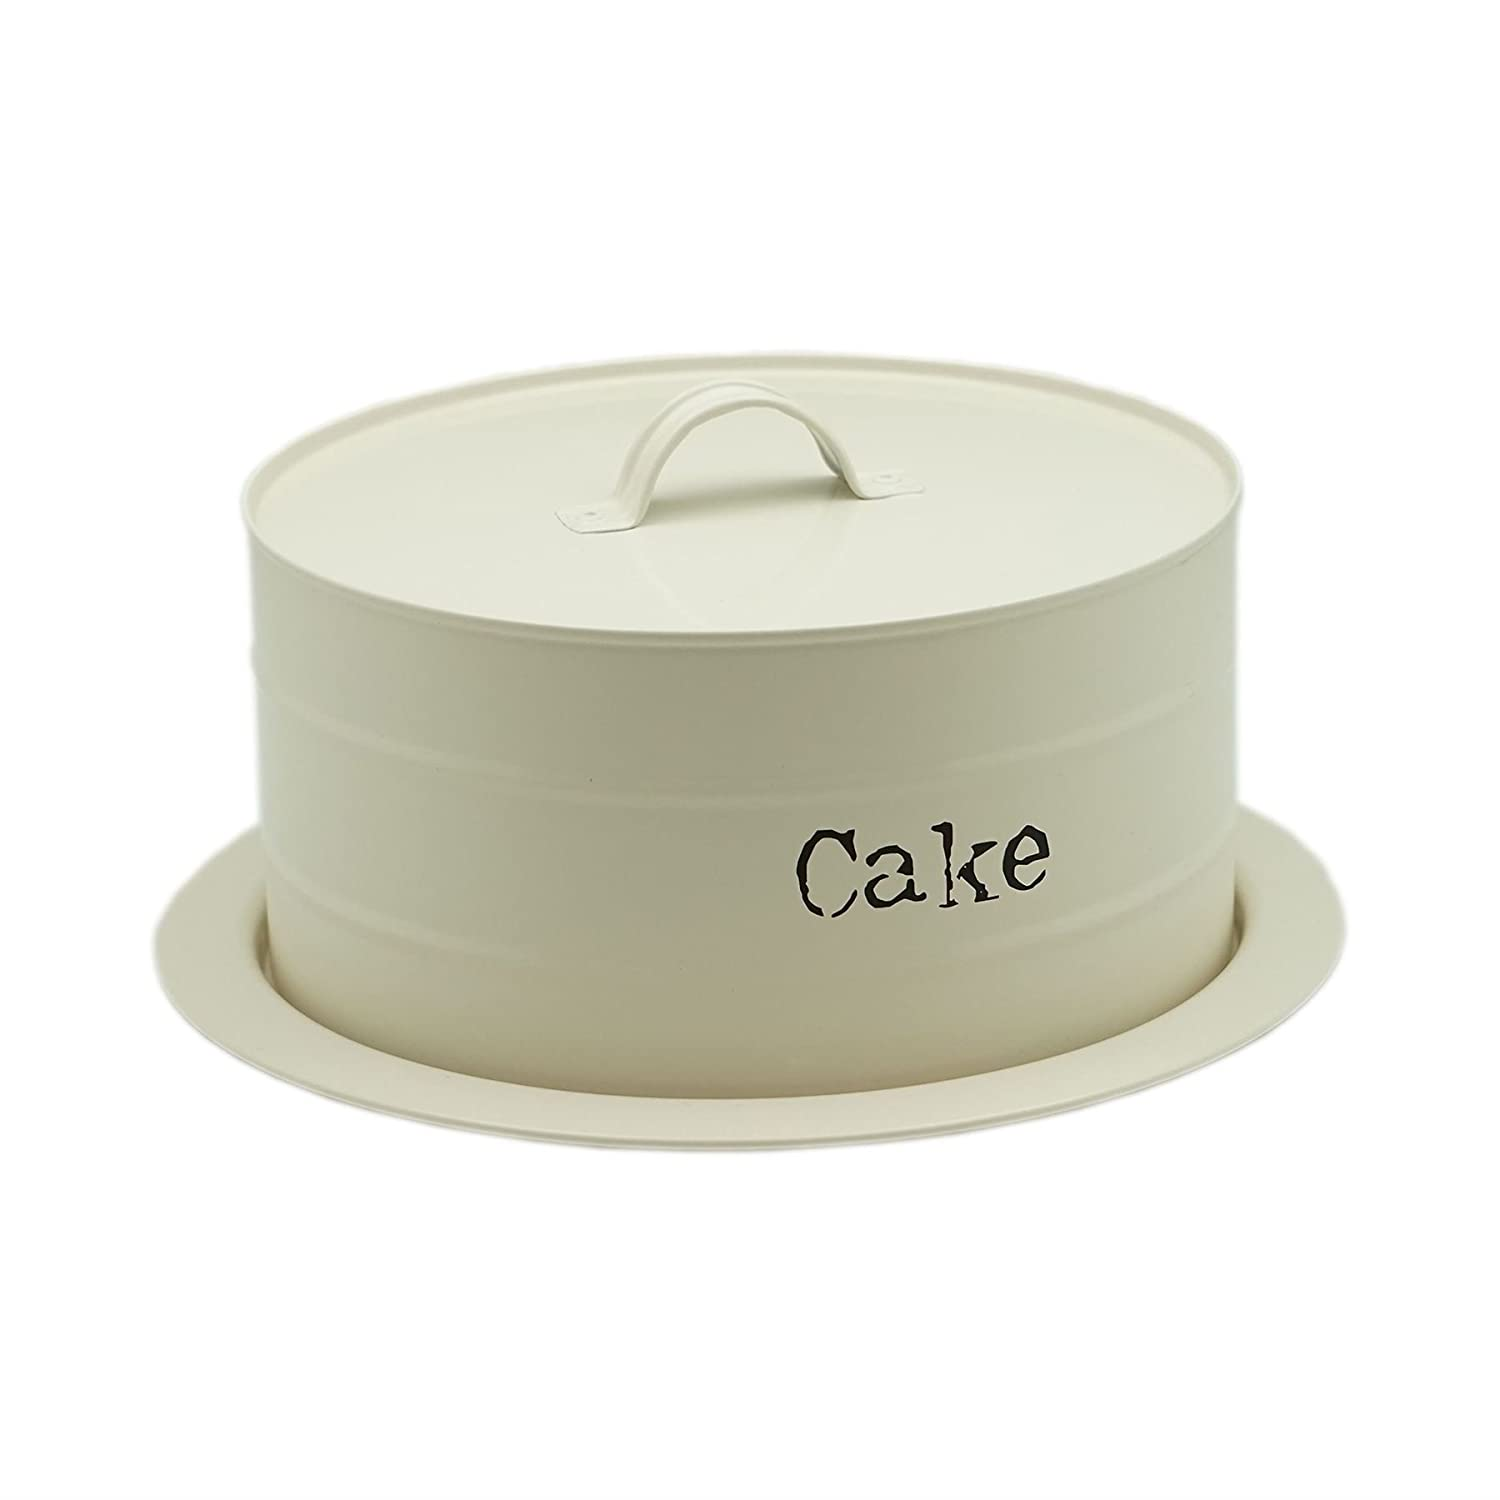 Metal Airtight Cake Storage Tin / Cake Dome -270x115mm - Cream Harbour Housewares